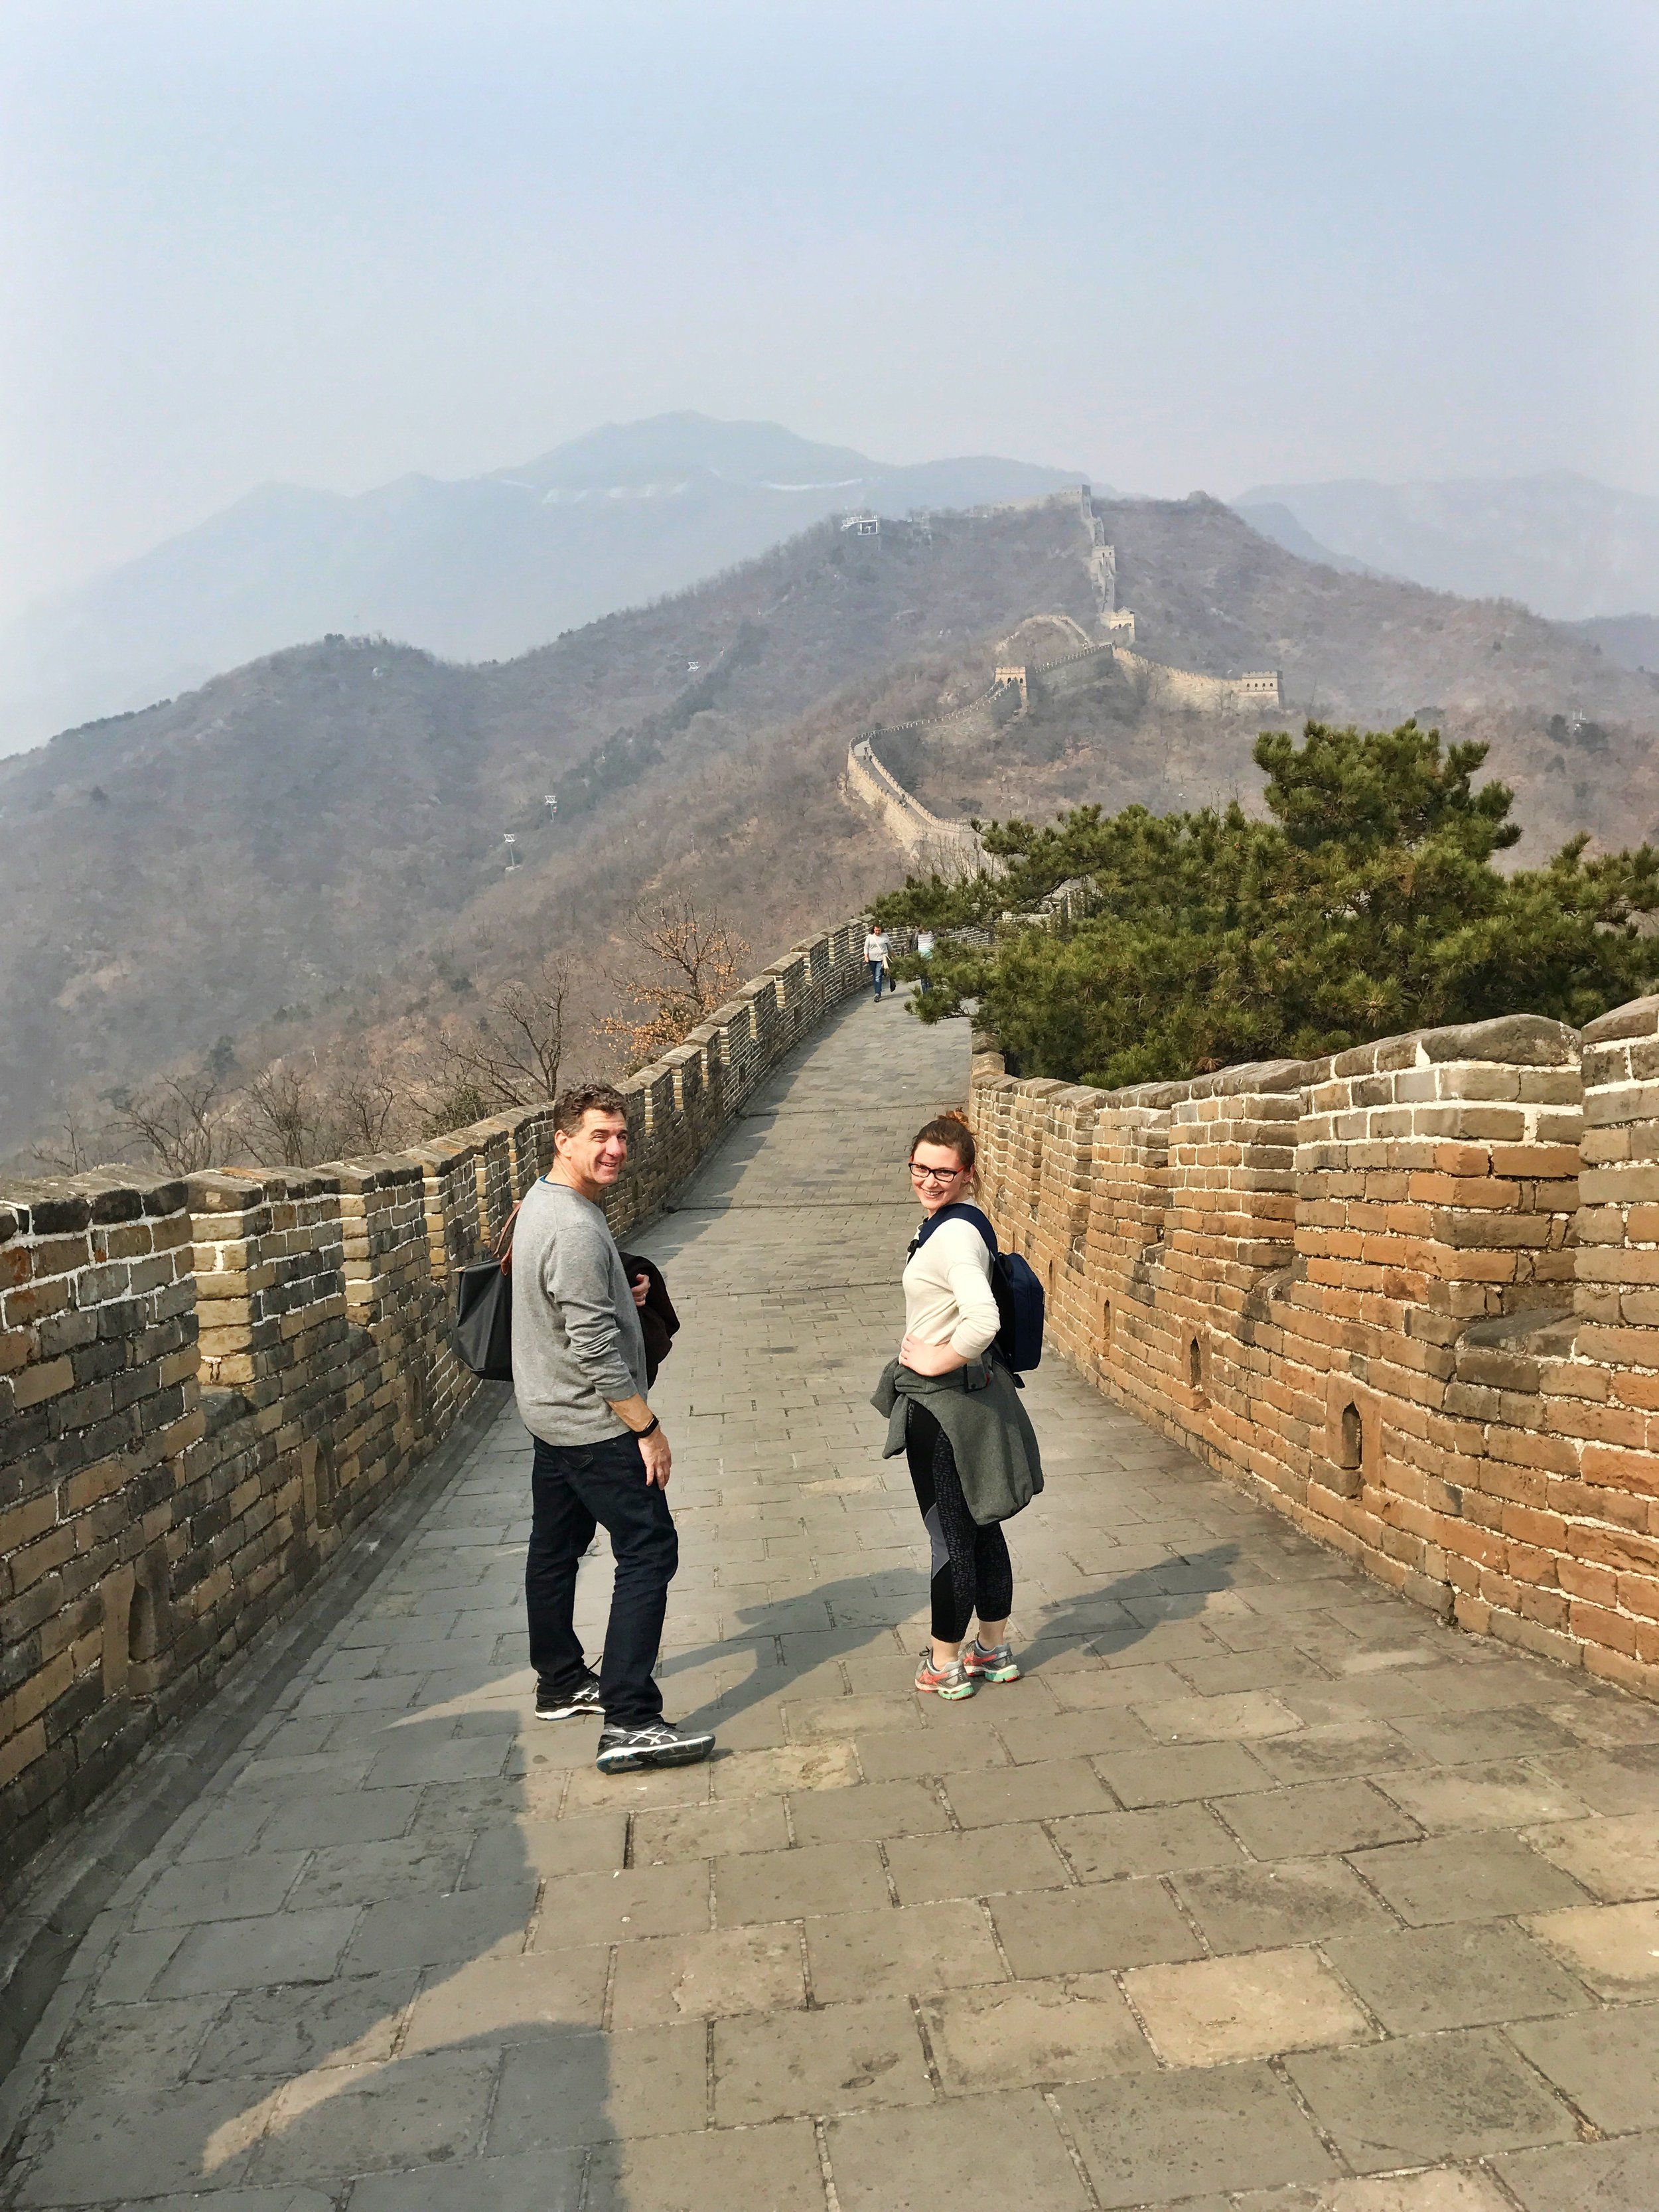 Stuart and Kimmy on the Great Wall, checking out the views.